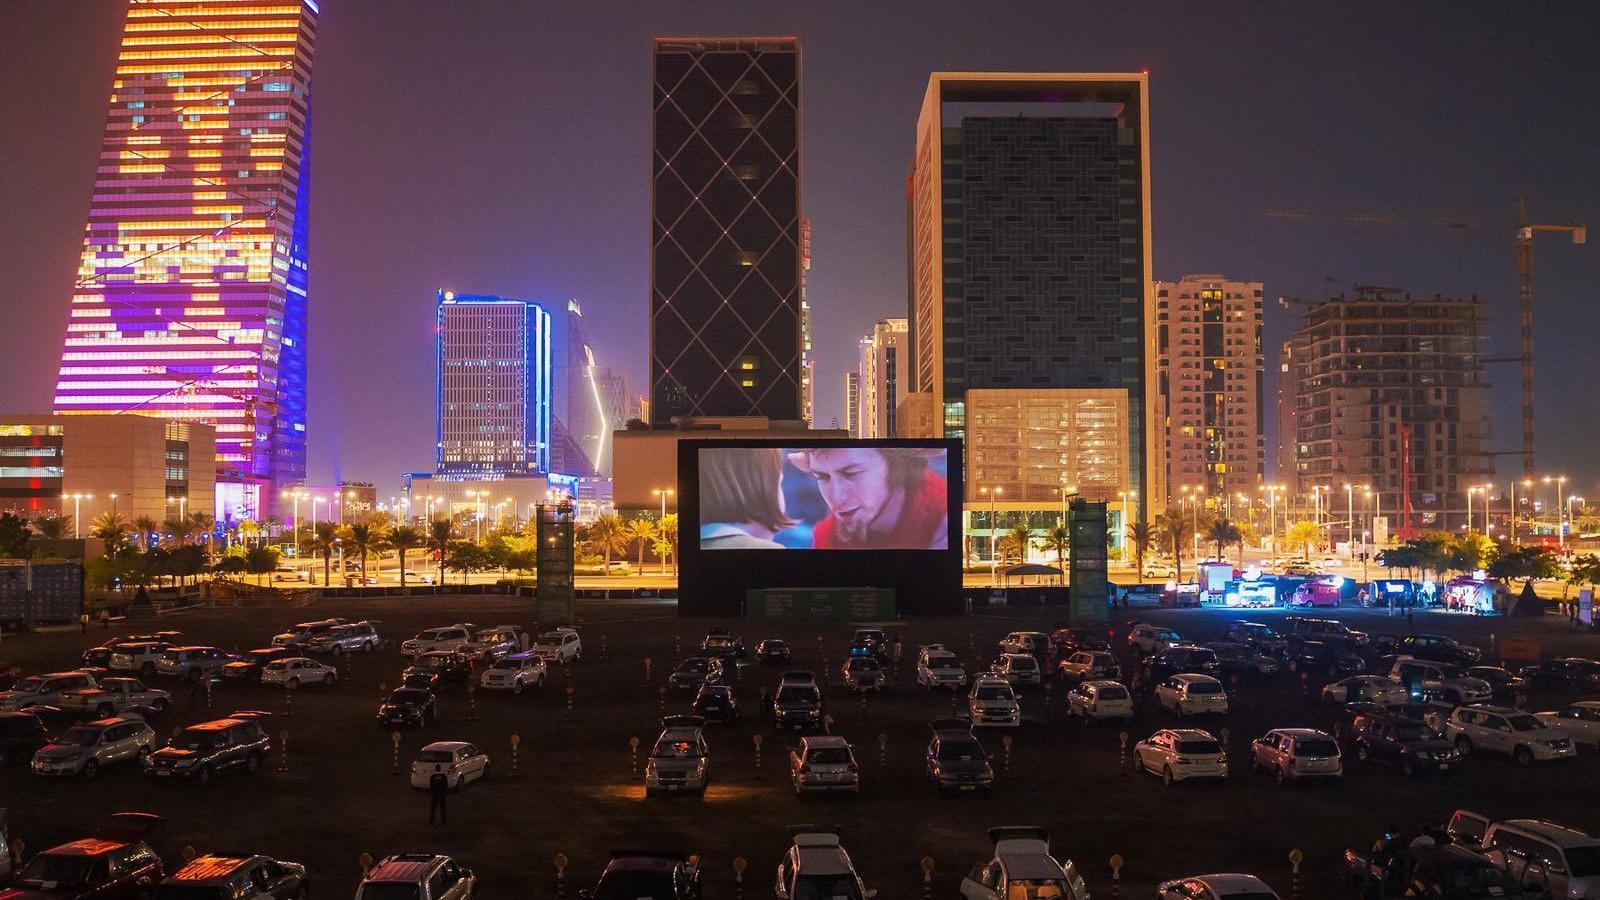 DFI's drive-in cinema at Lusail to screen two films to celebrate National Sport Day